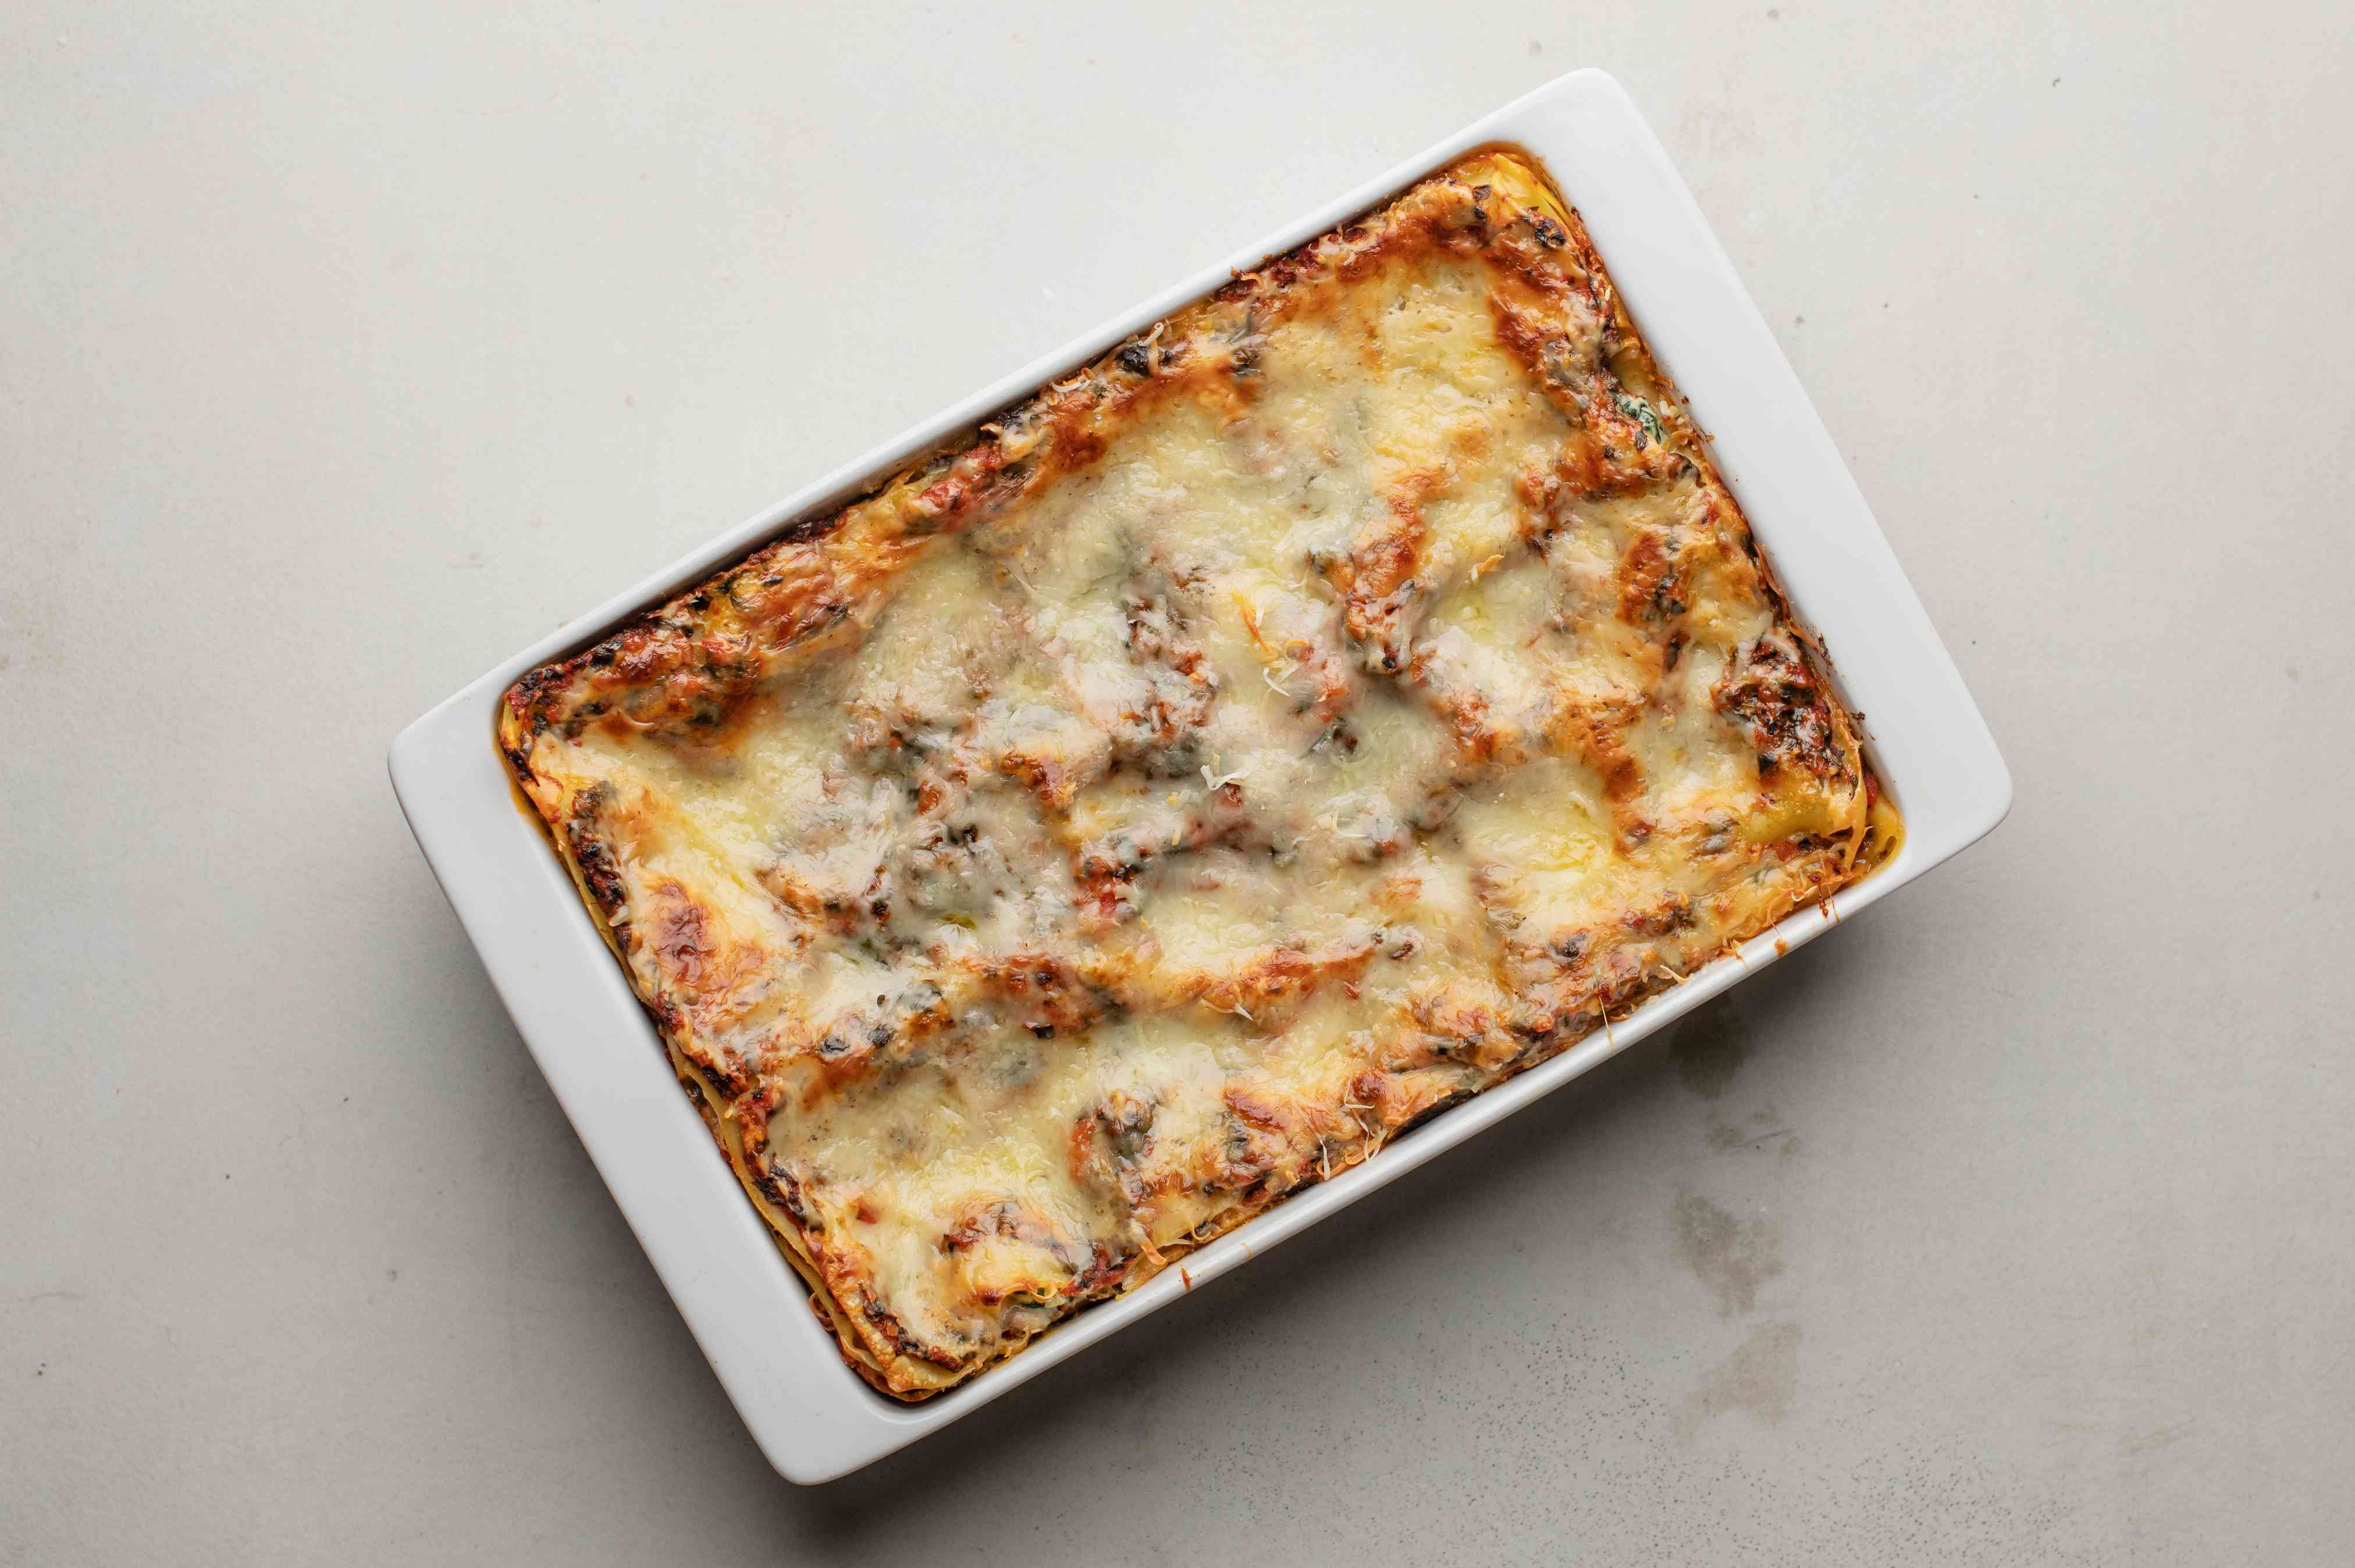 Bake lasagna for another 20 minutes until cheese has melted